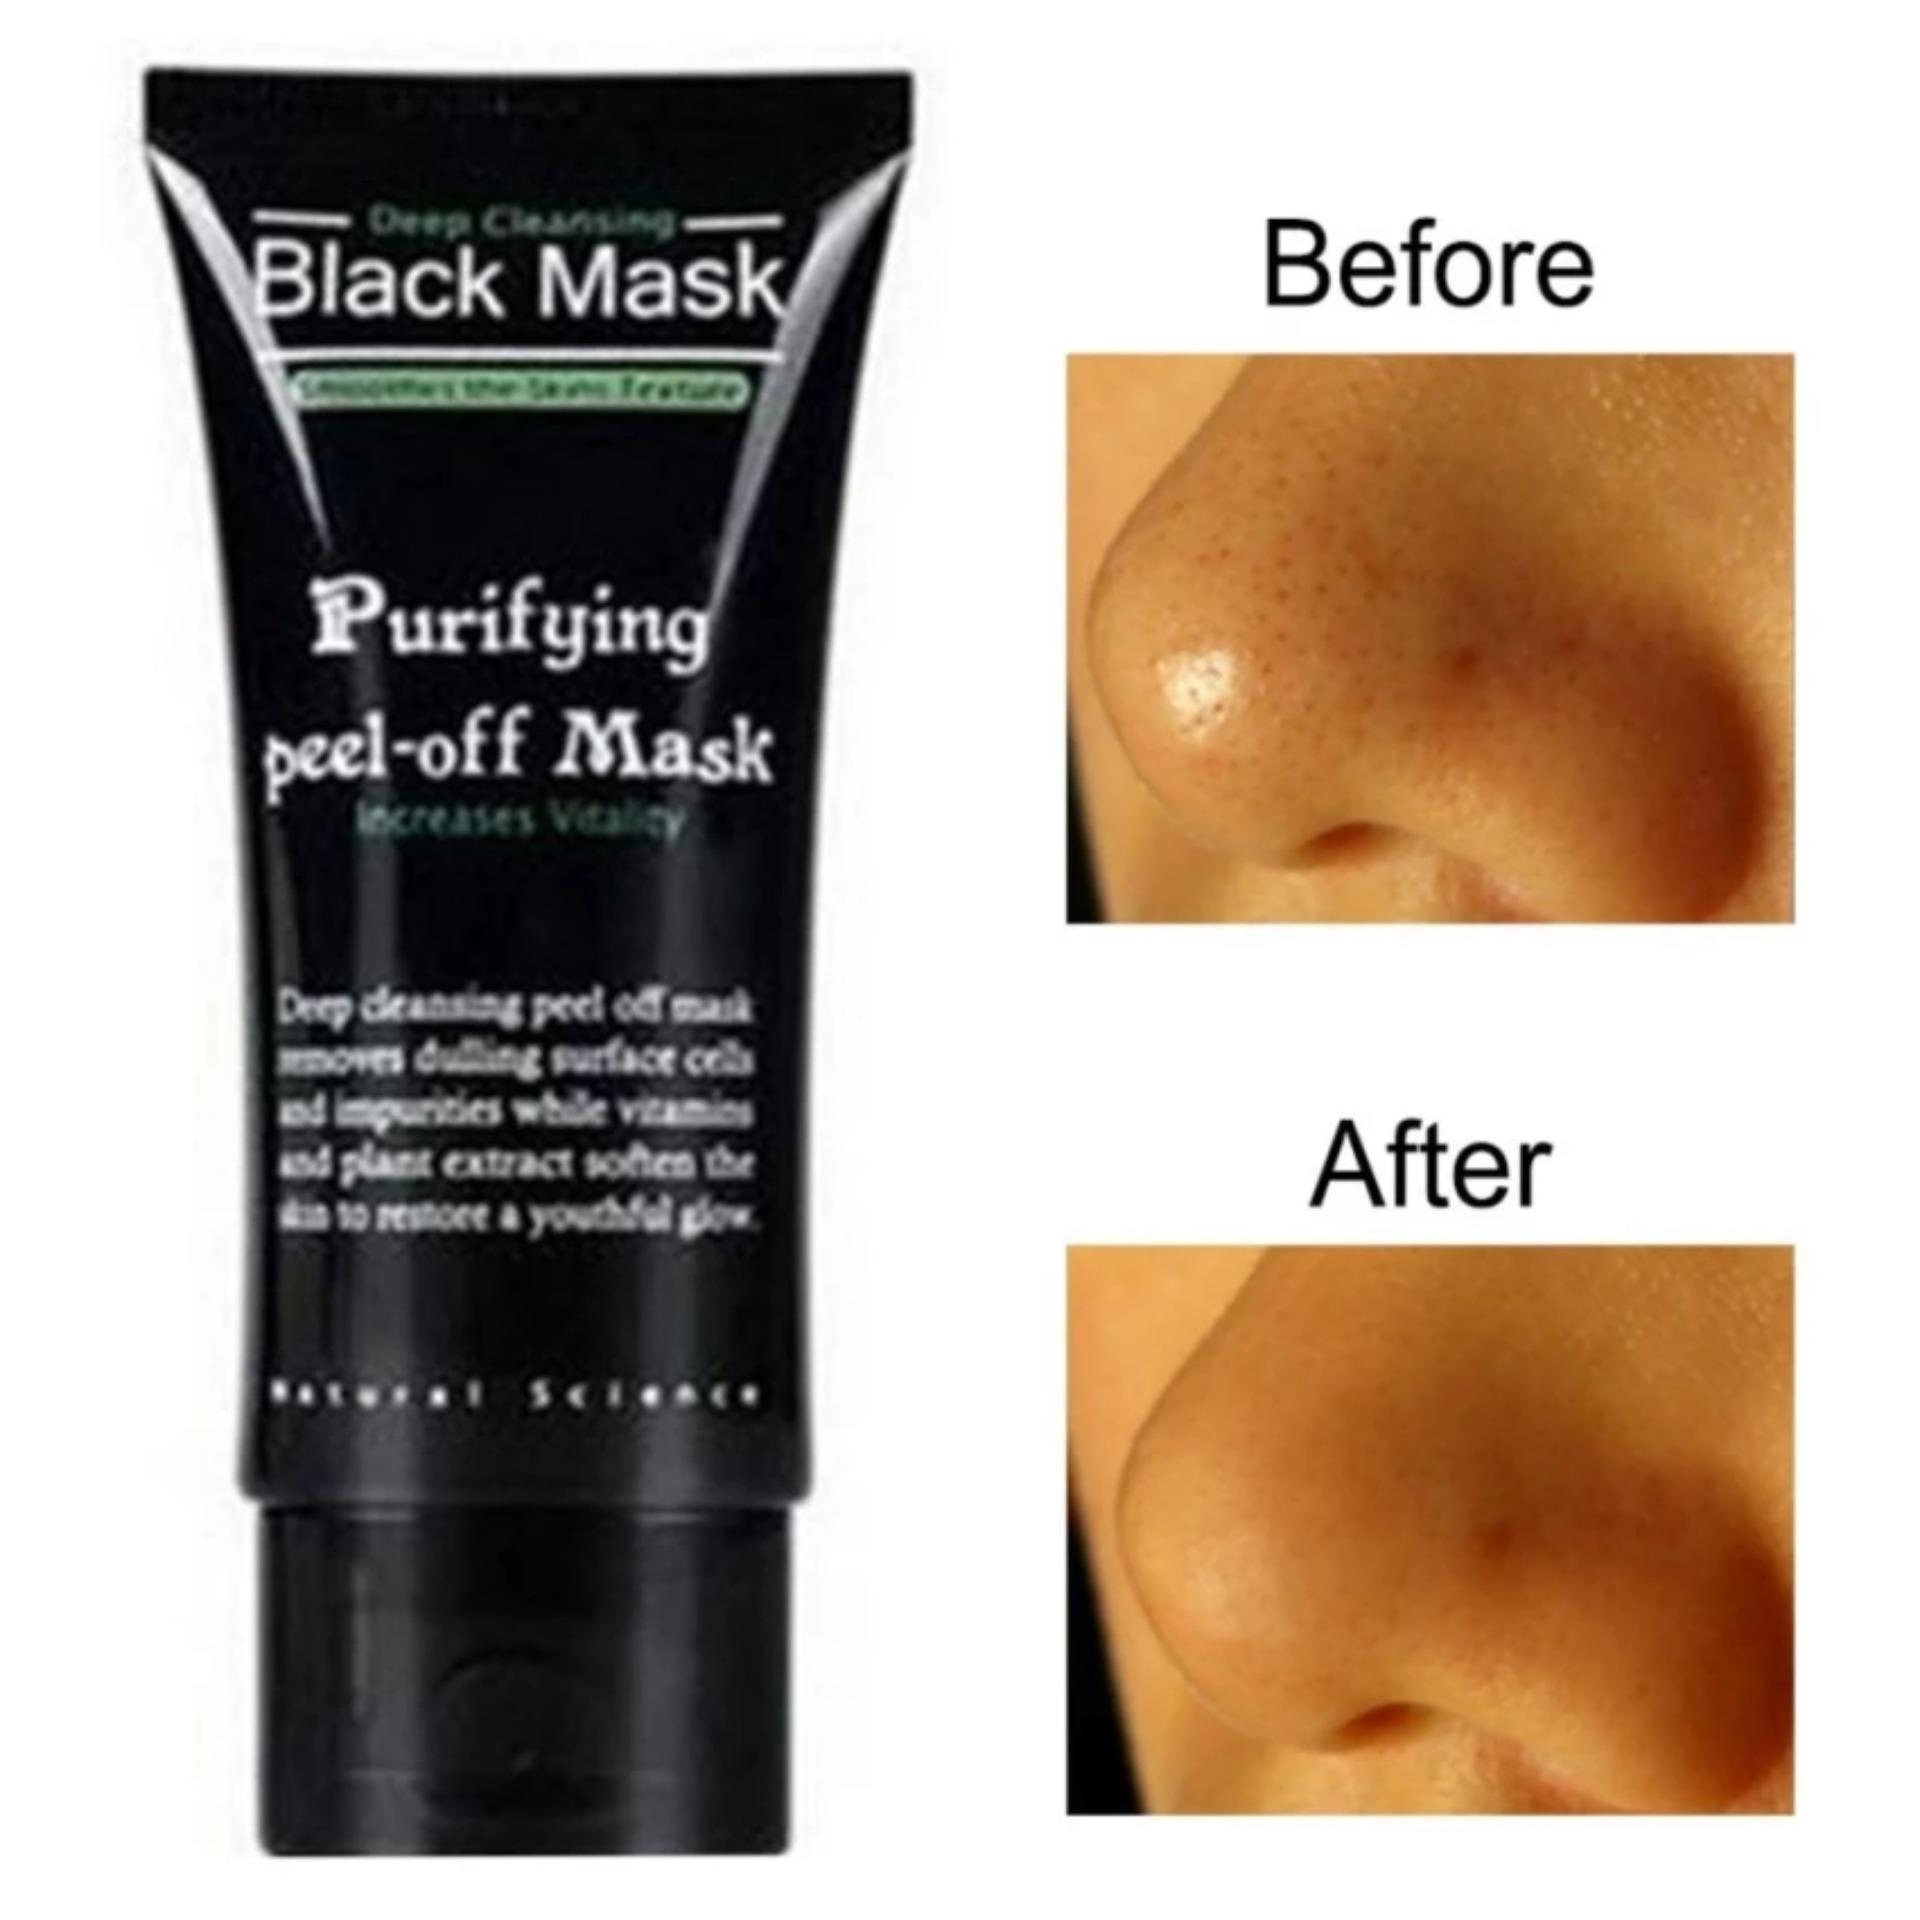 Black Mask Kiss Beauty Deep Cleansing Acne Purifying Peel-off / Masker .